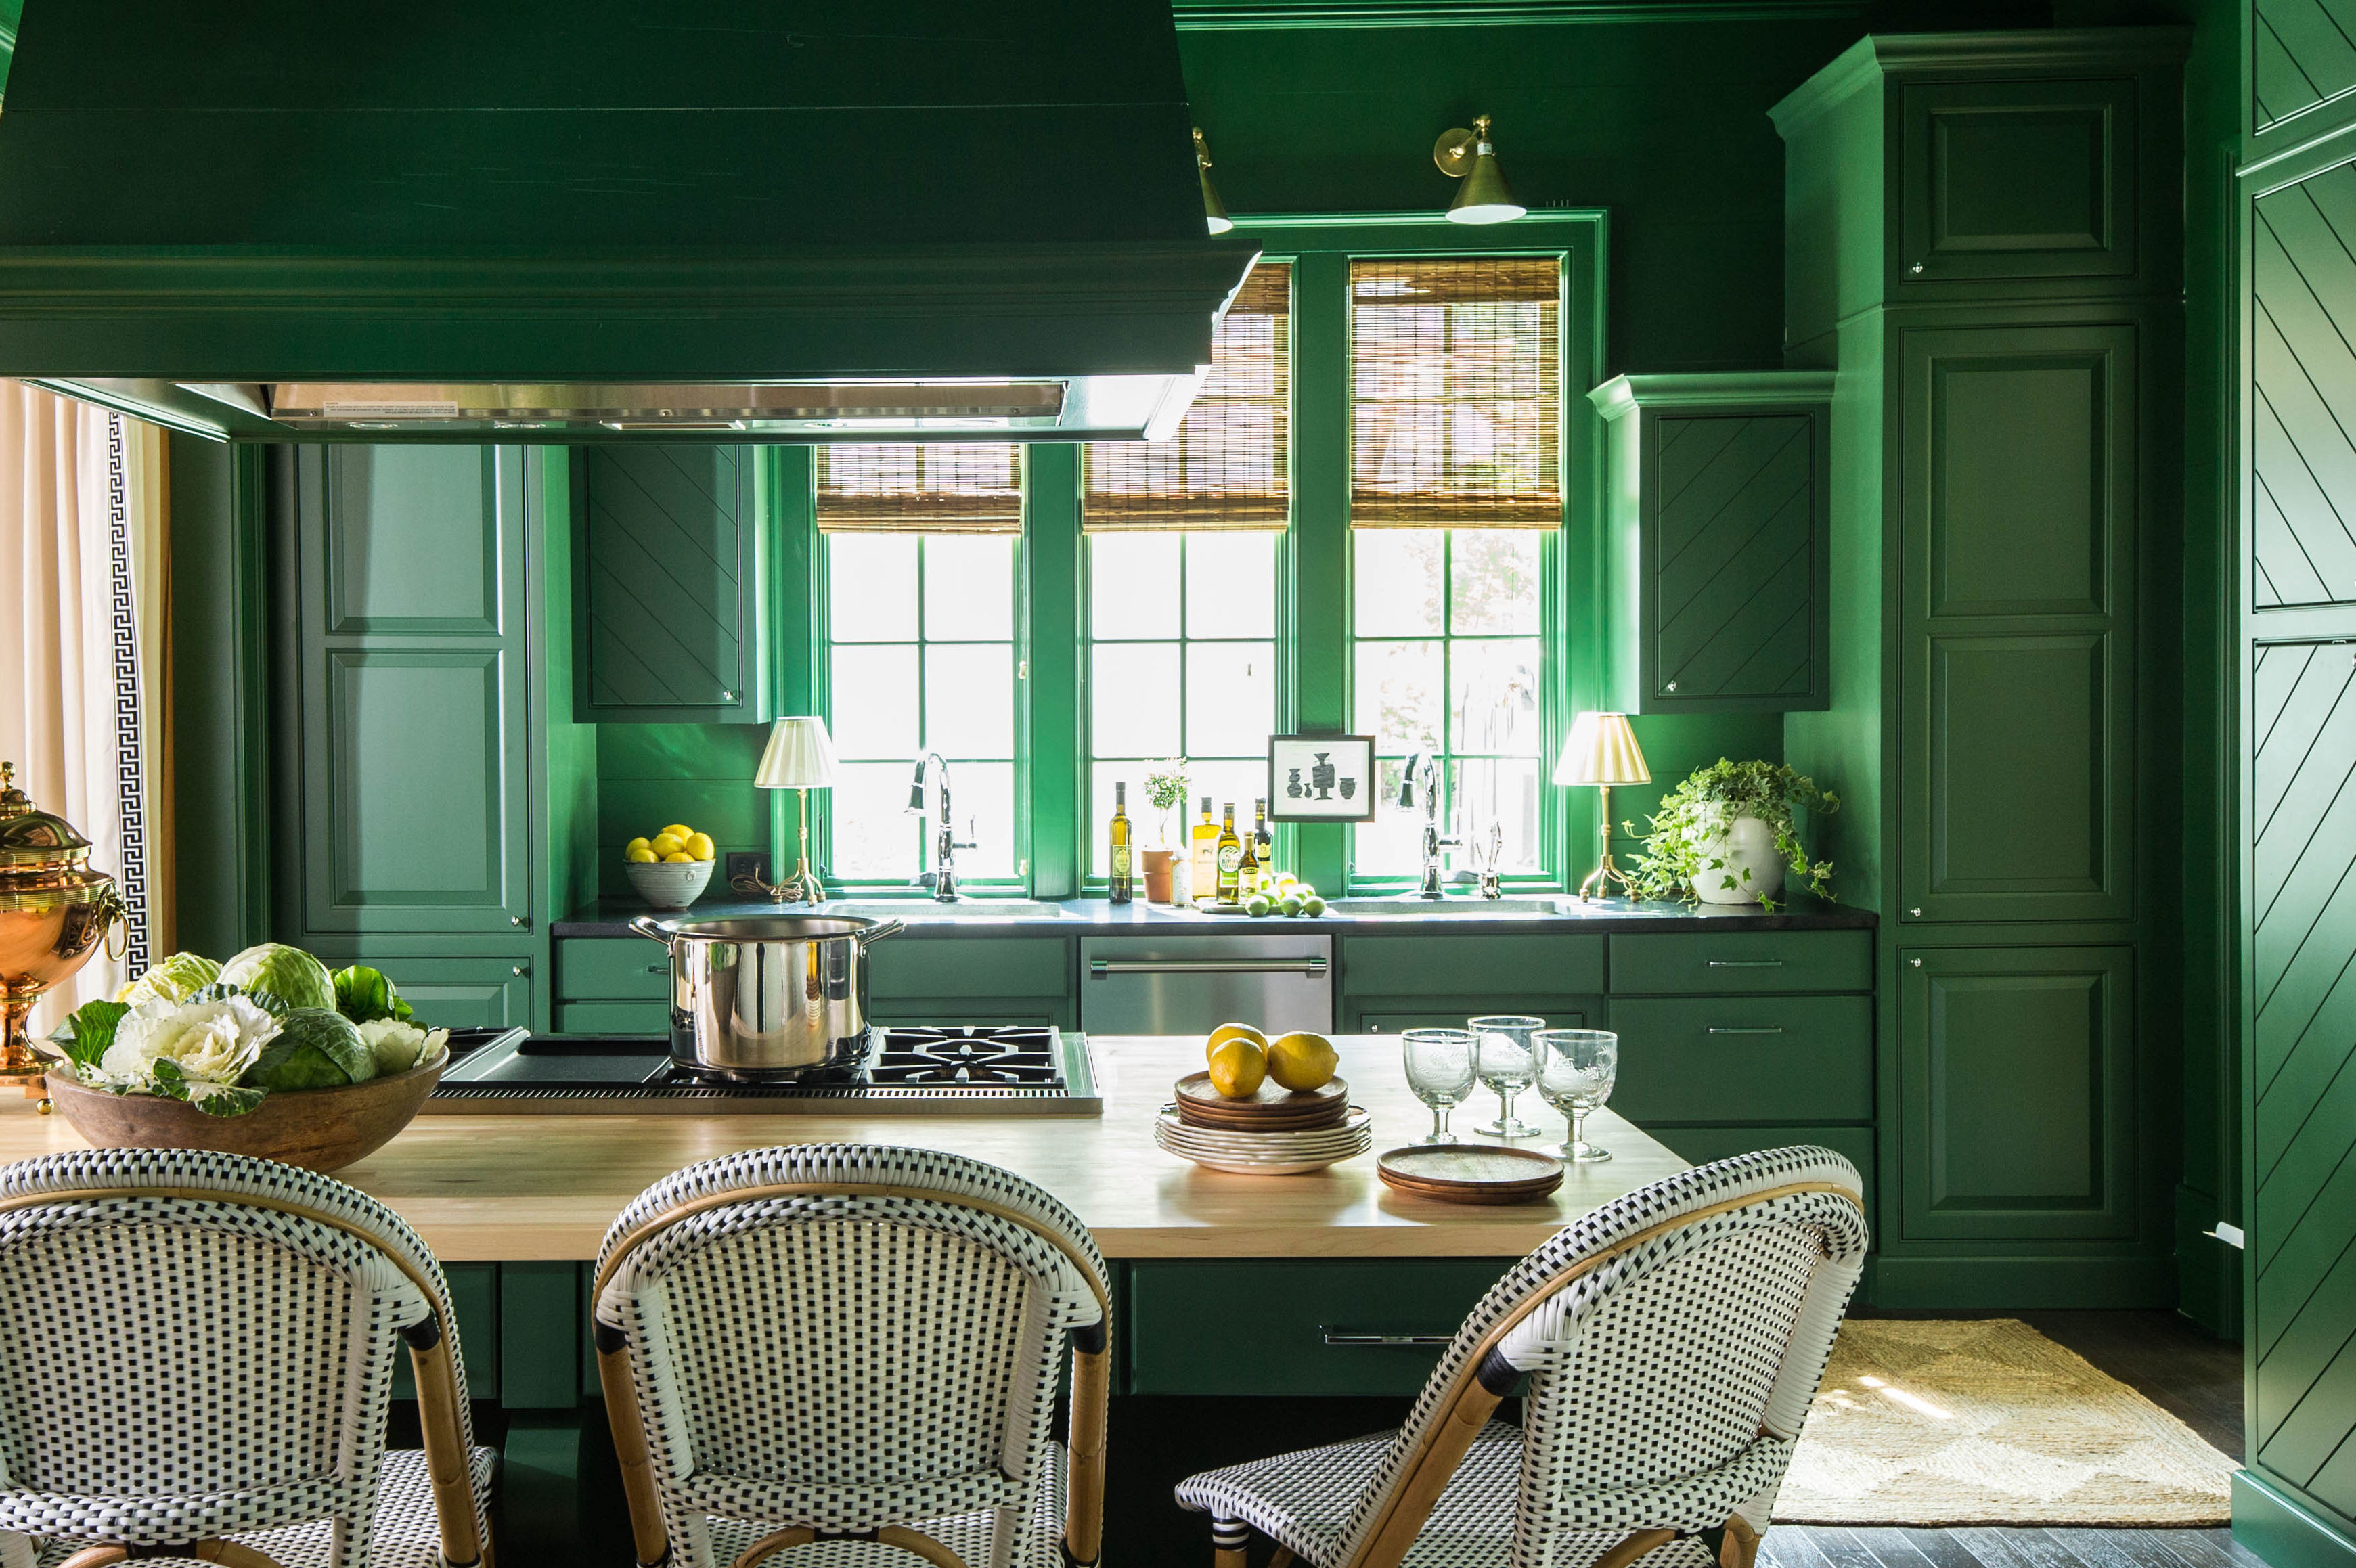 The Kitchen Paint Color Trend We Didn't See Coming in 2019